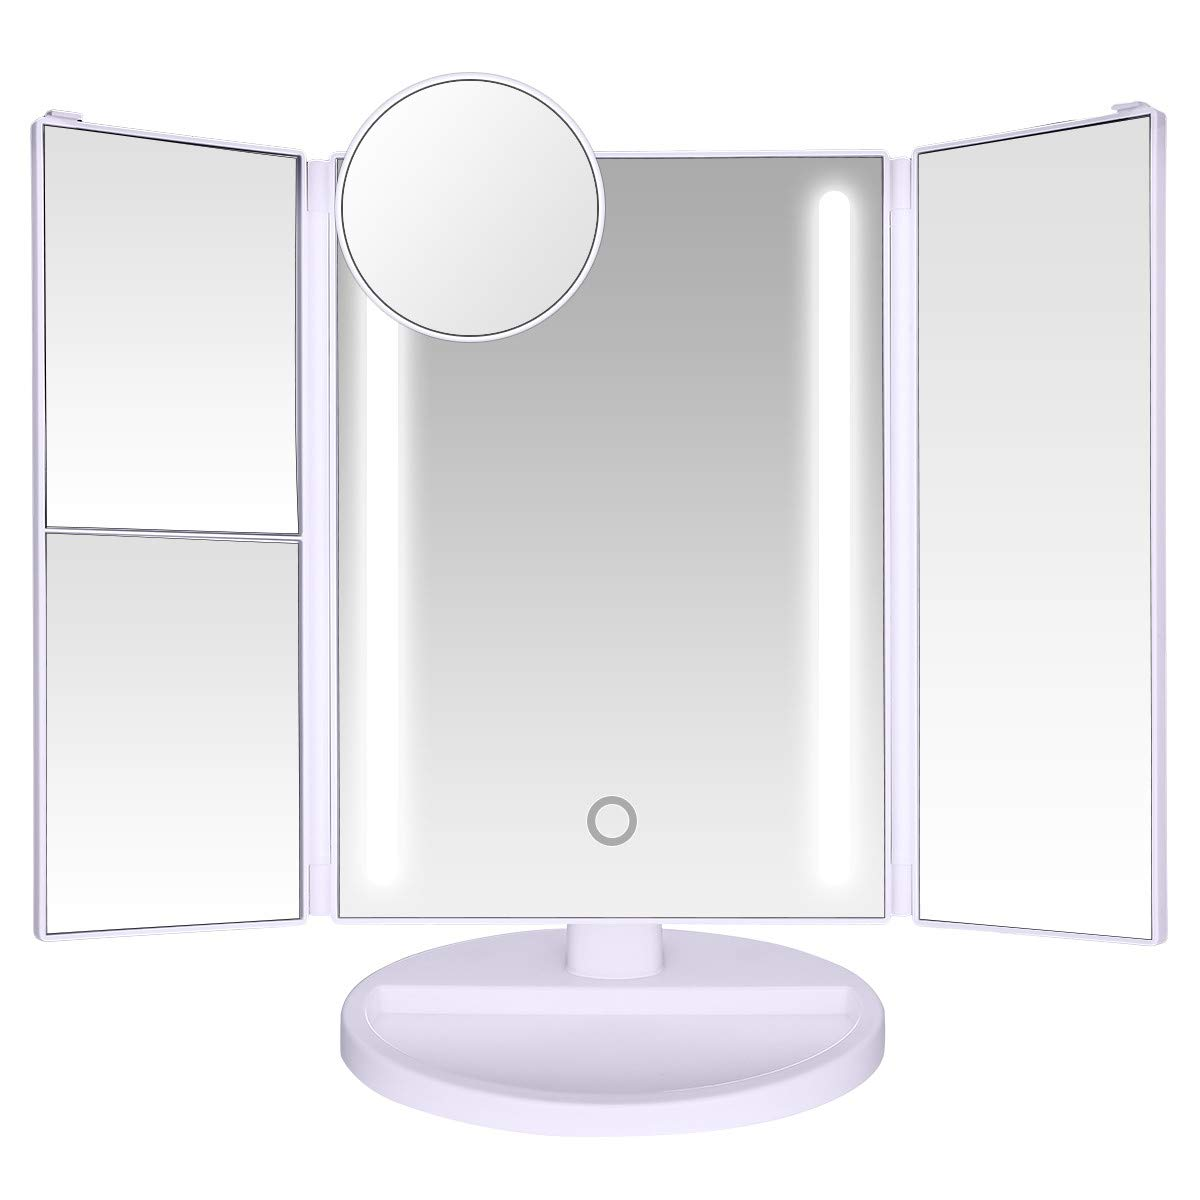 LEPO Makeup Vanity Mirror with Touch Screen, 10x/3x/2x/1x Magnification LED Makeup Mirror with 24 LED Lights, 180° Free Rotation, High Definition Cosmetic Mirror